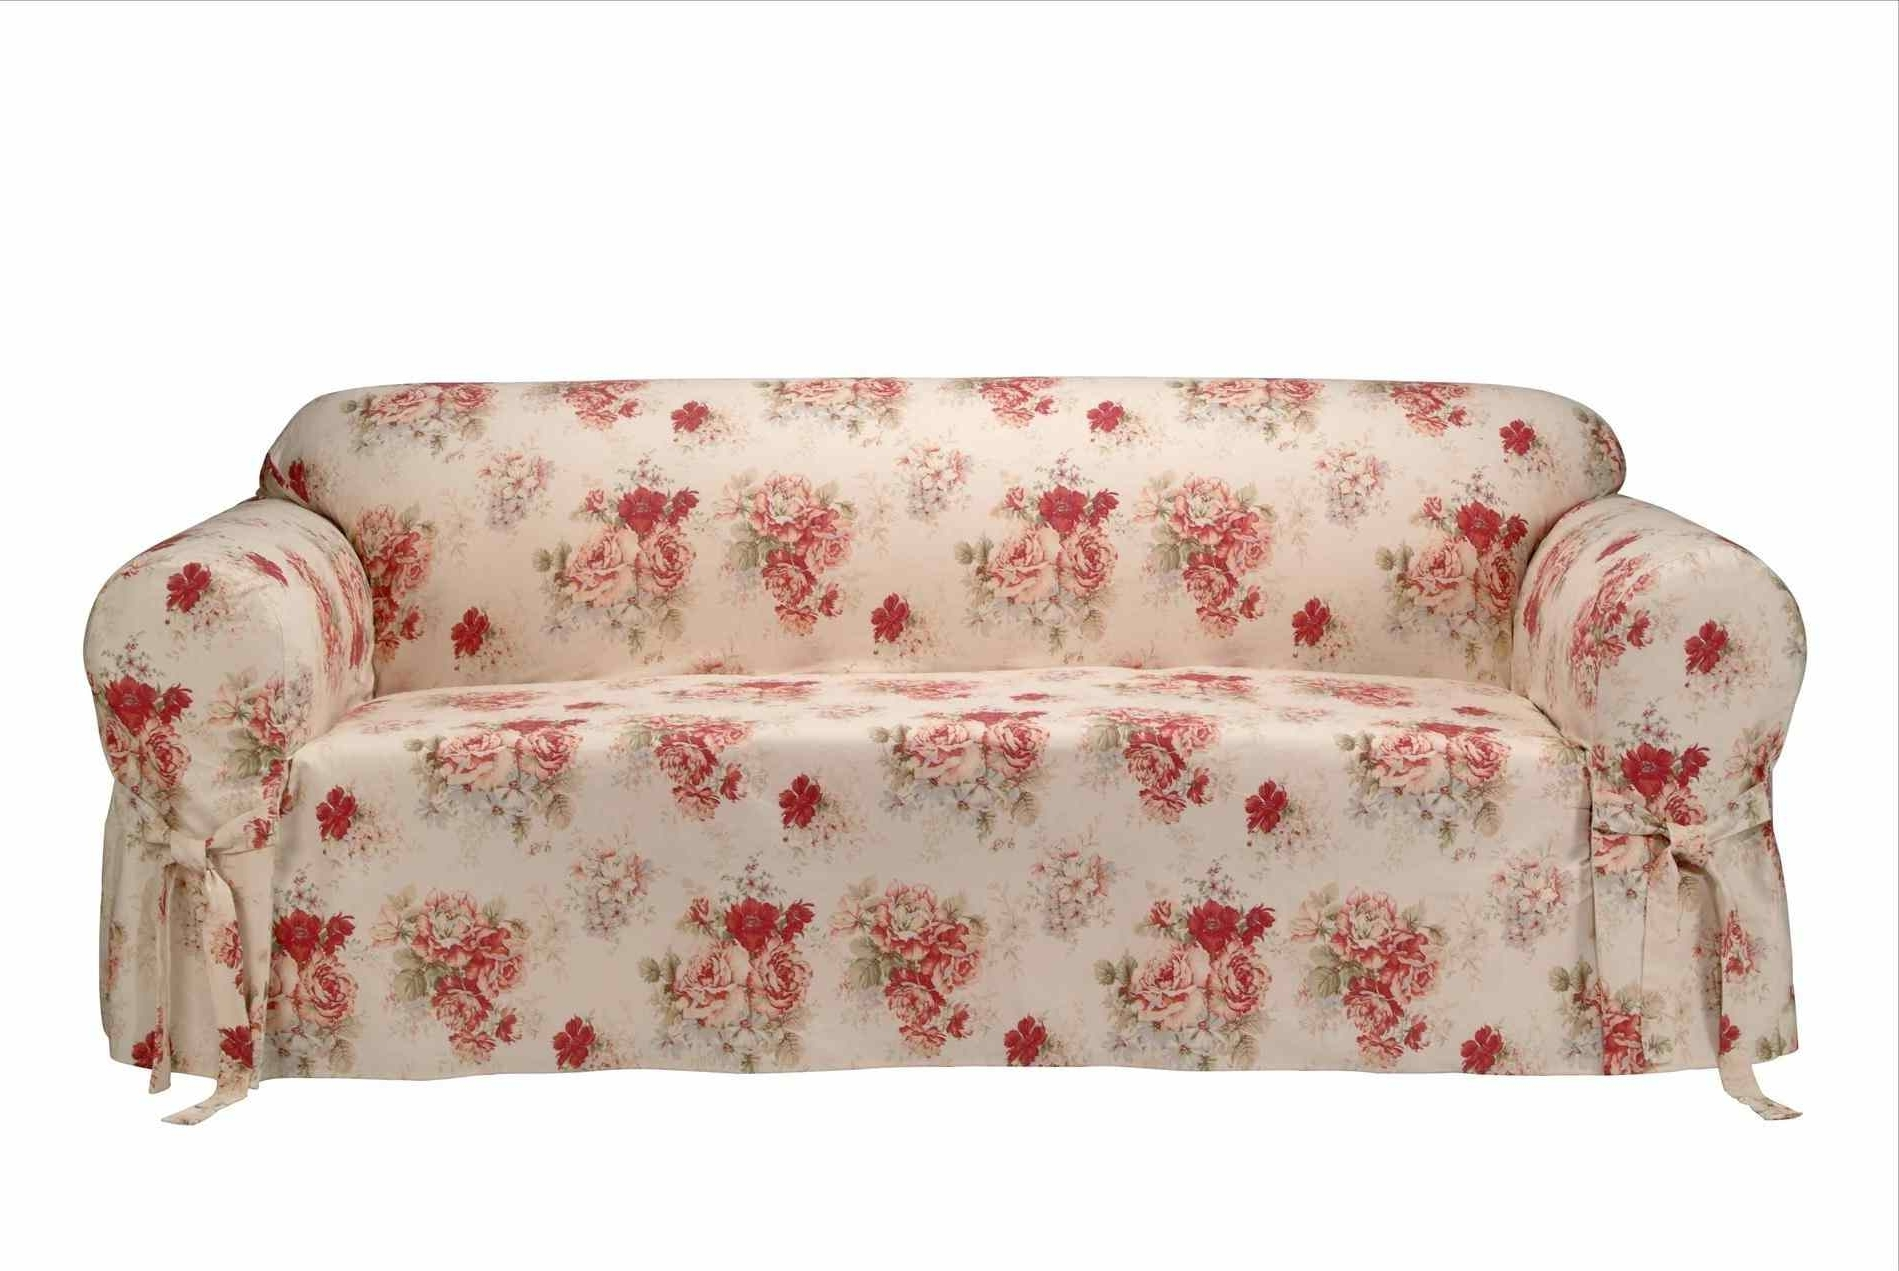 Image Gallery Of Chintz Covered Sofas